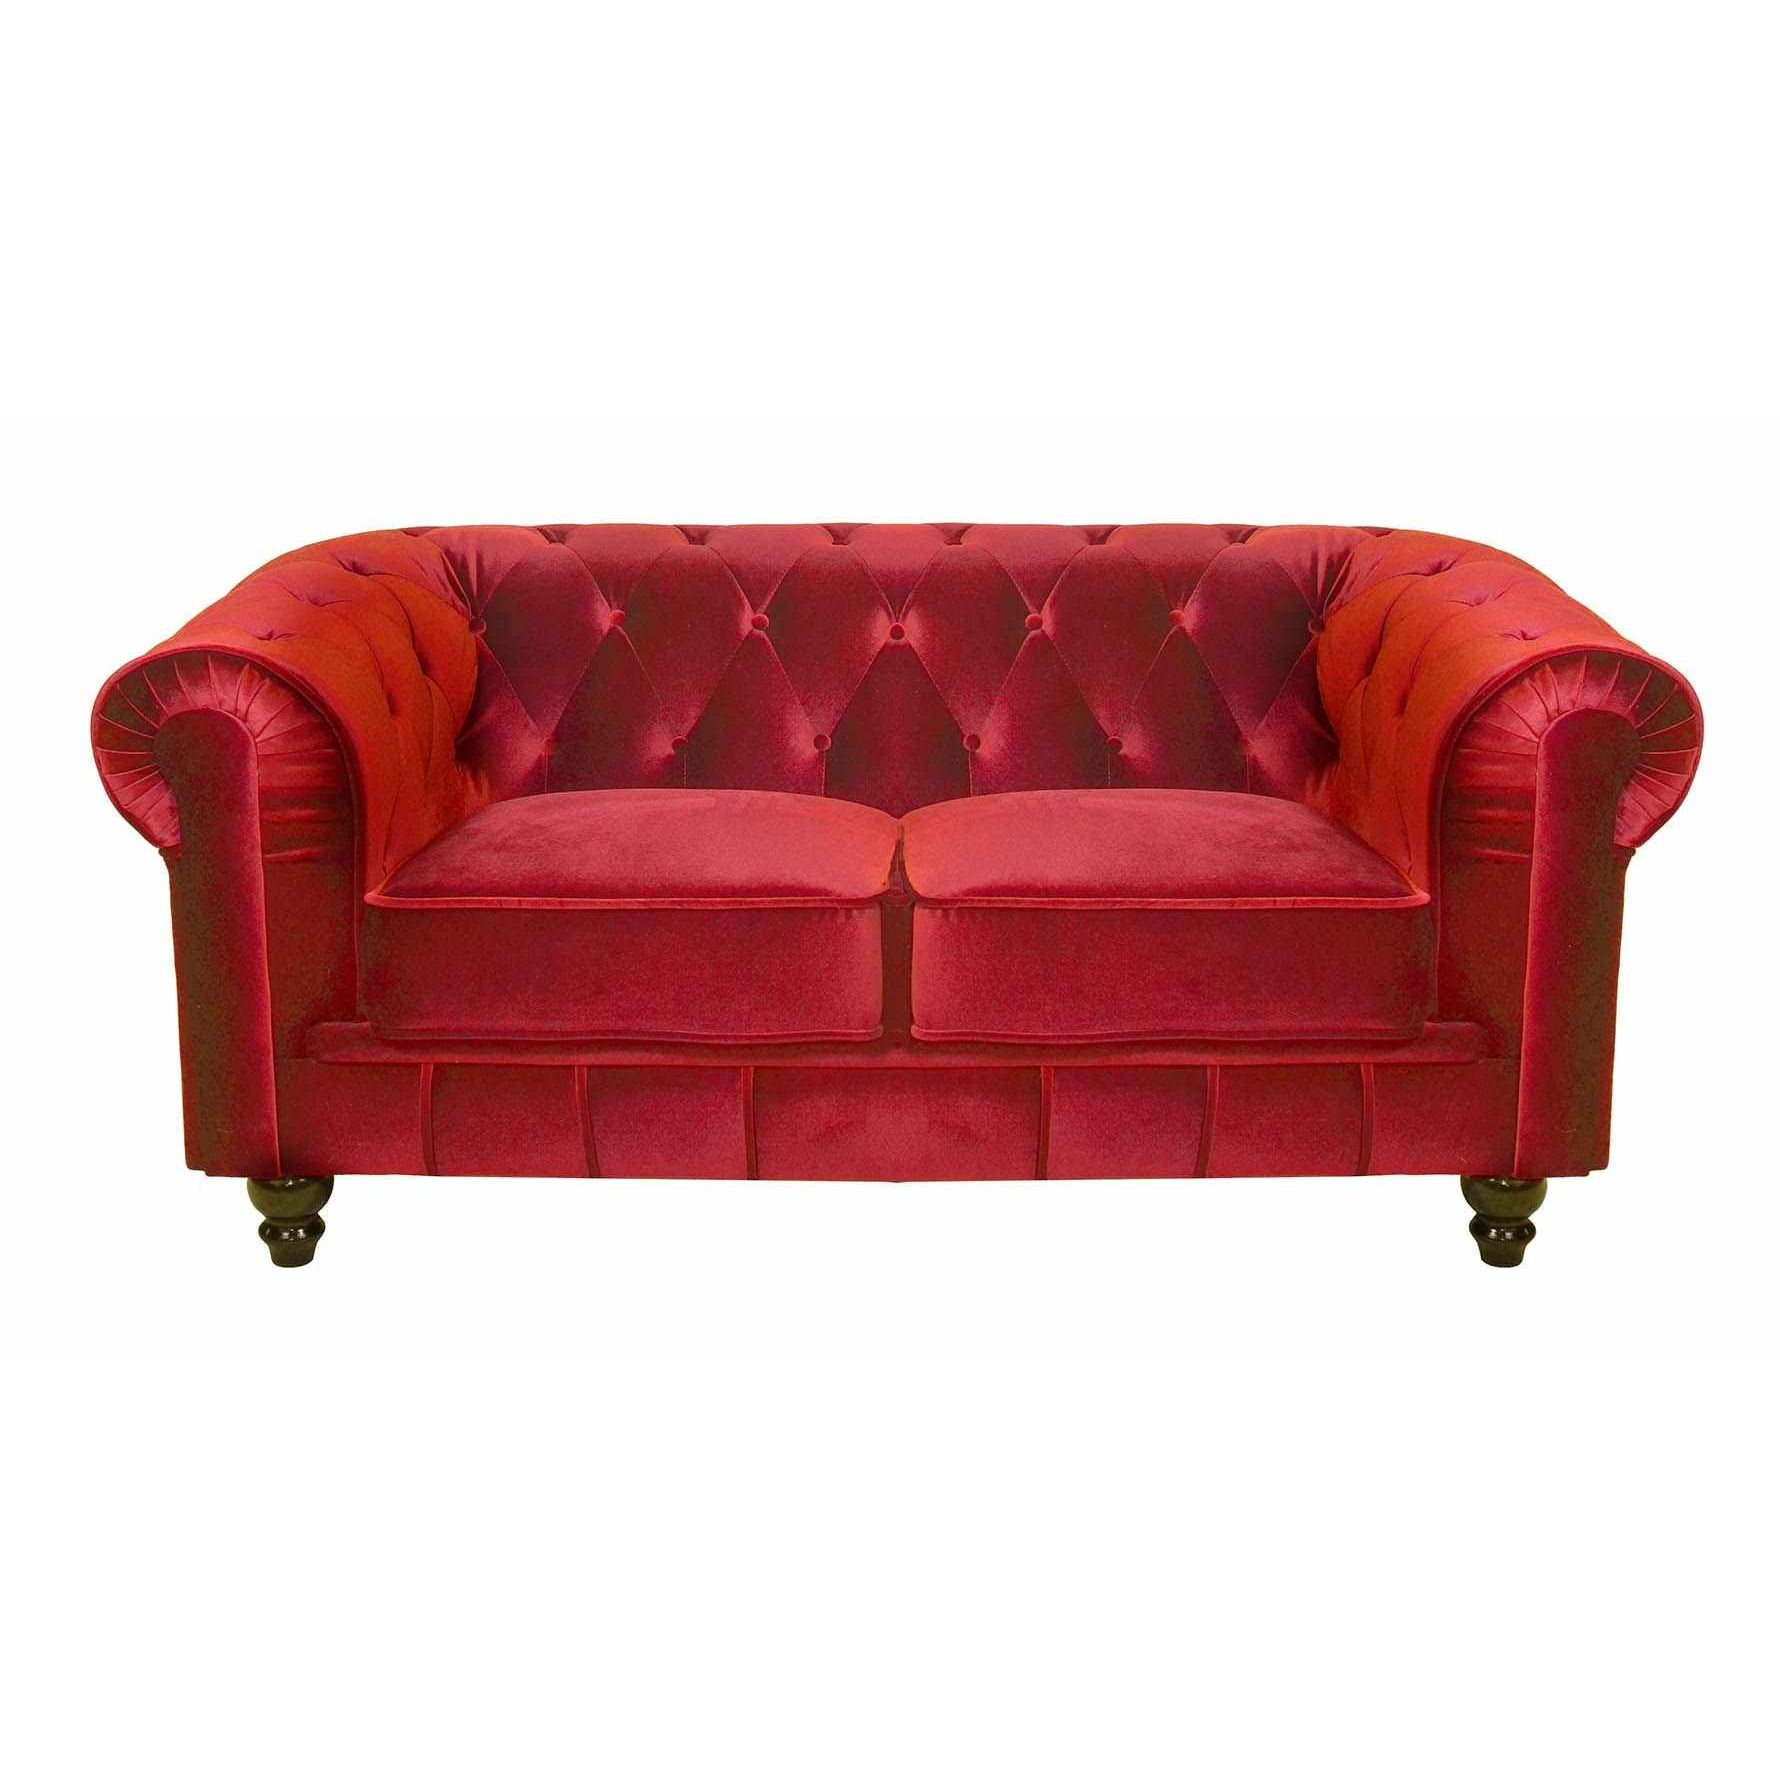 deco in paris canape 2 places velours rouge chesterfield. Black Bedroom Furniture Sets. Home Design Ideas